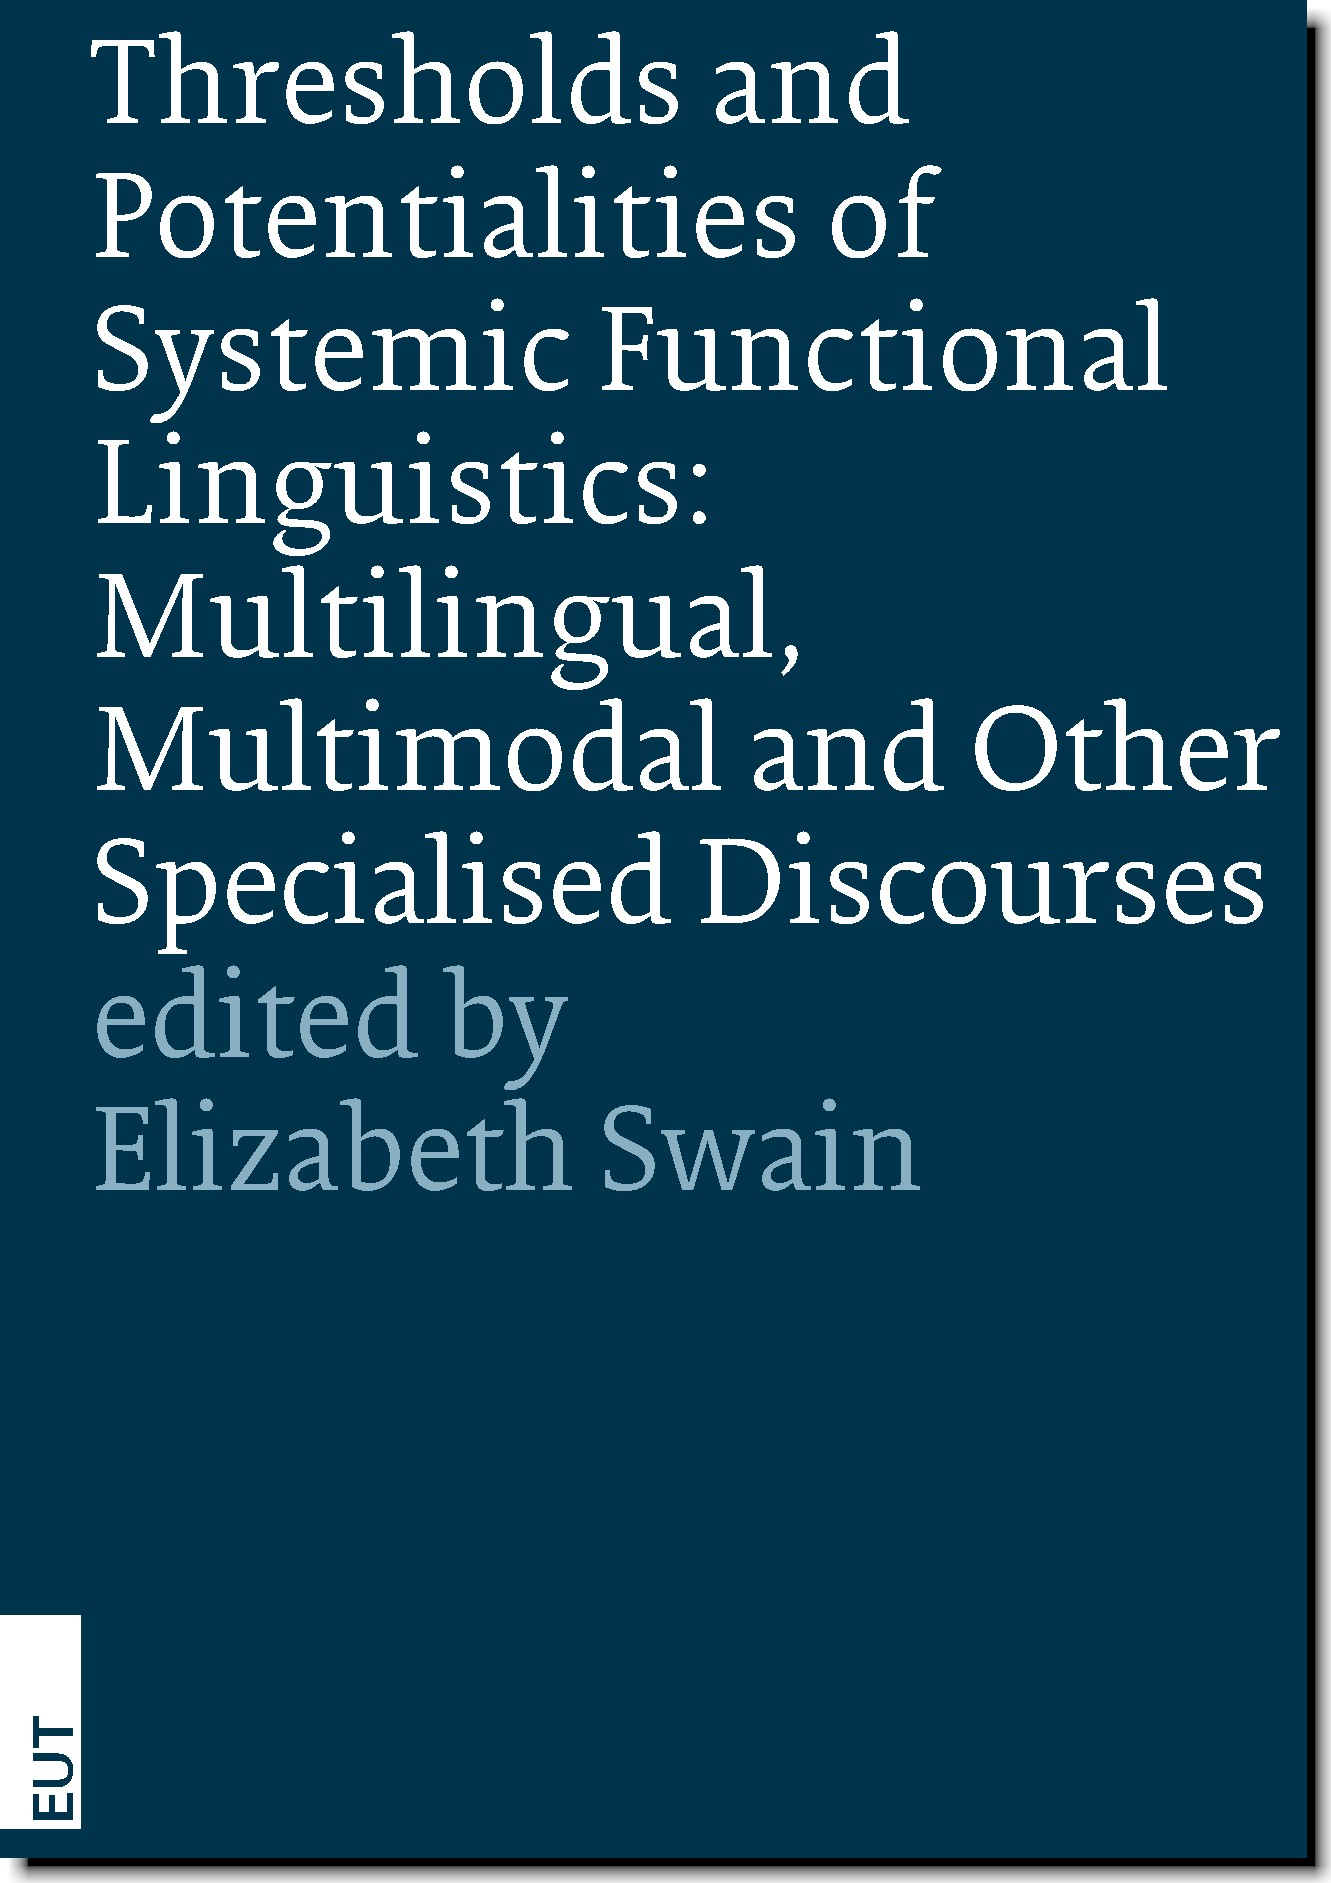 Thresholds and Potentialities of Systemic Functional Linguistics: Multilingual, Multimodal and Other Specialised Discourses